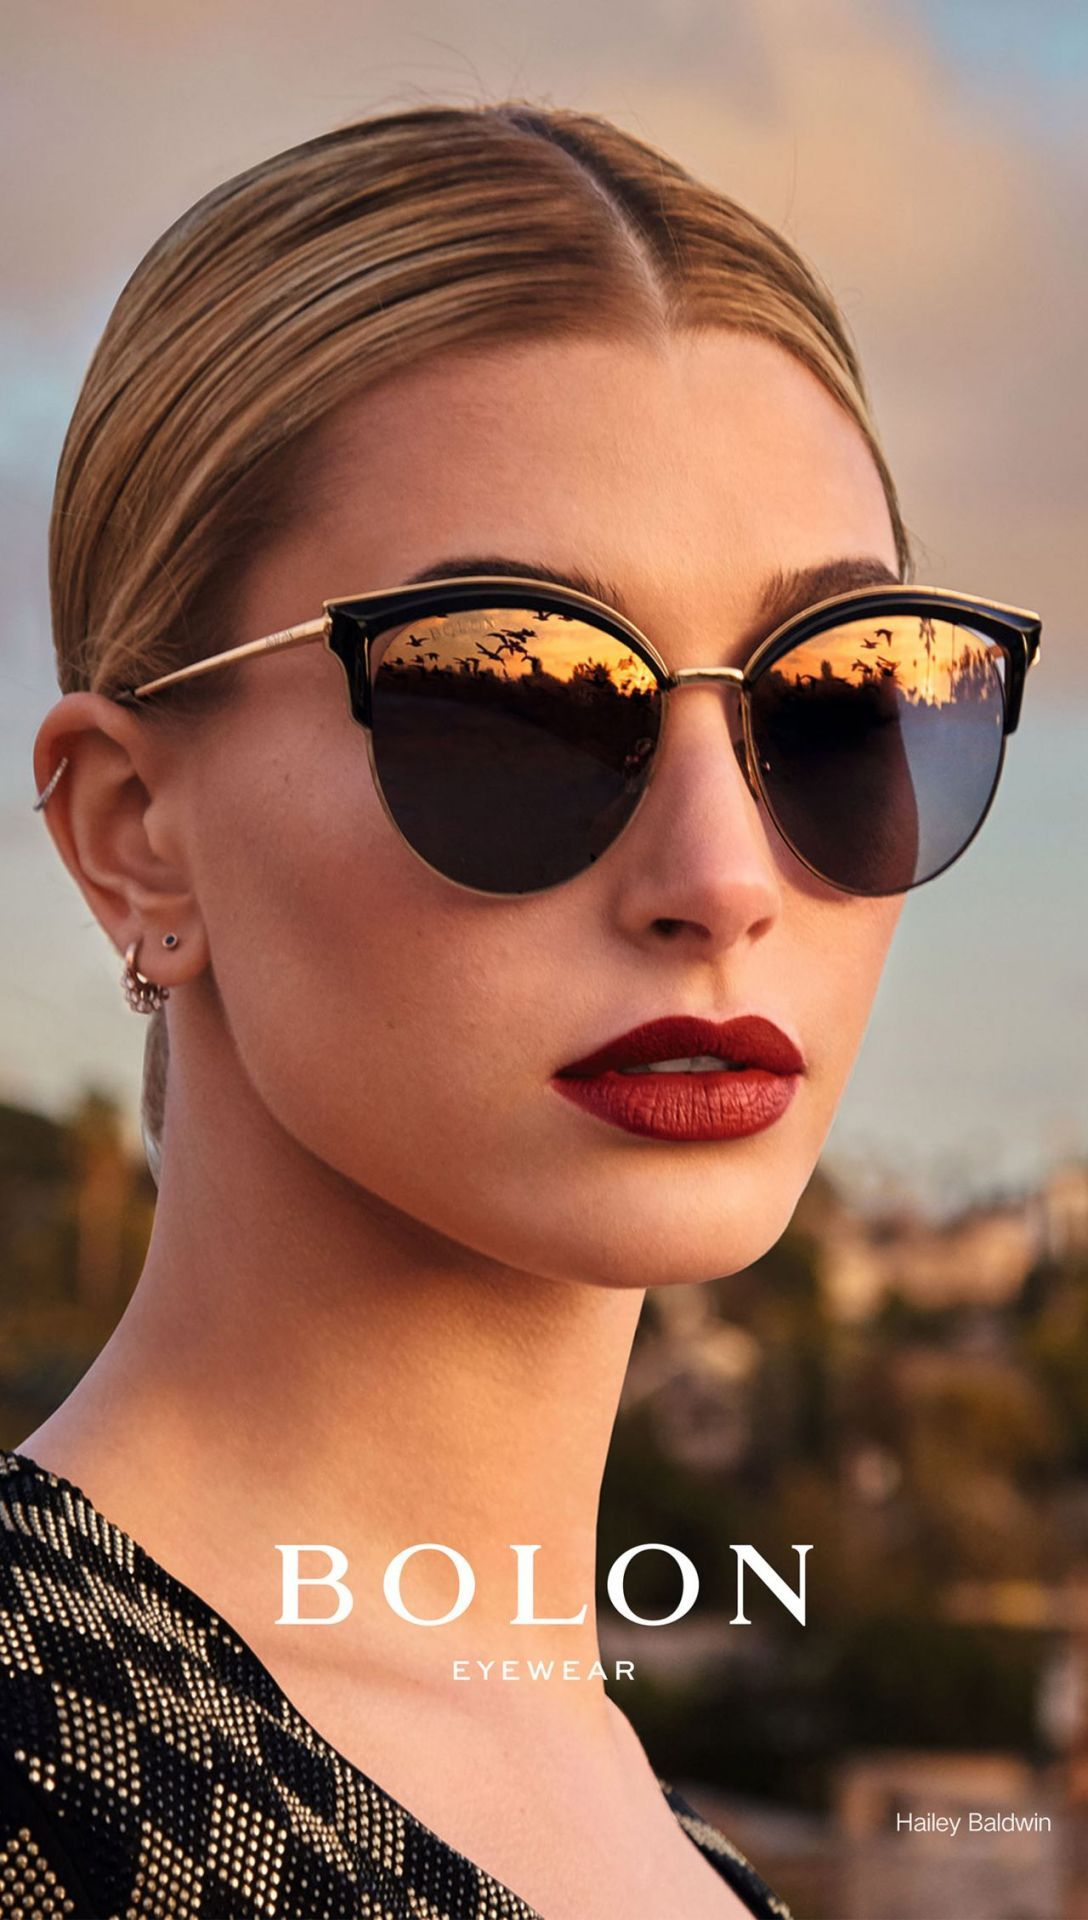 76345119ac Hailey Baldwin for Bolon Eyewear - Best sunglasses and fashion blog in one  spot. A one stop spot connecting you to the trendiest sunglasses and  hottest ...